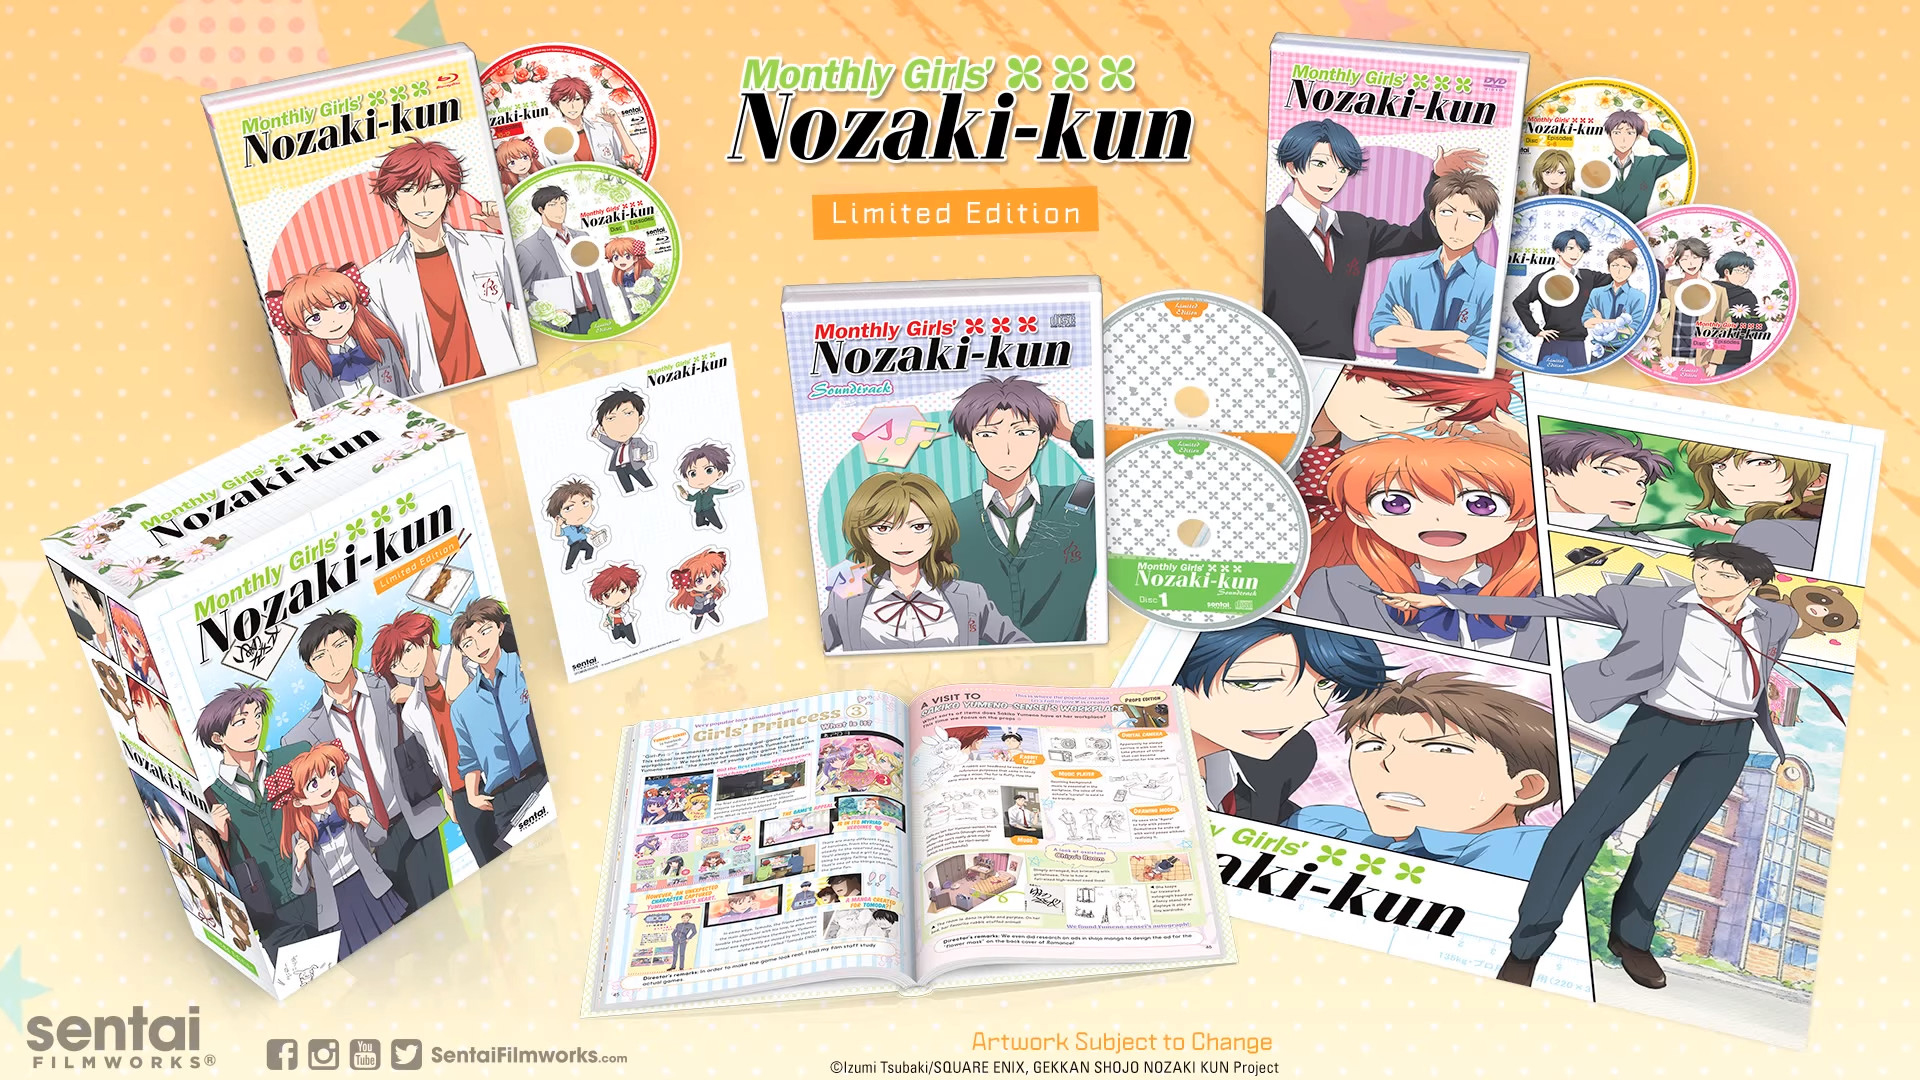 Monthly Girls' Nozaki-kun Limited Edition